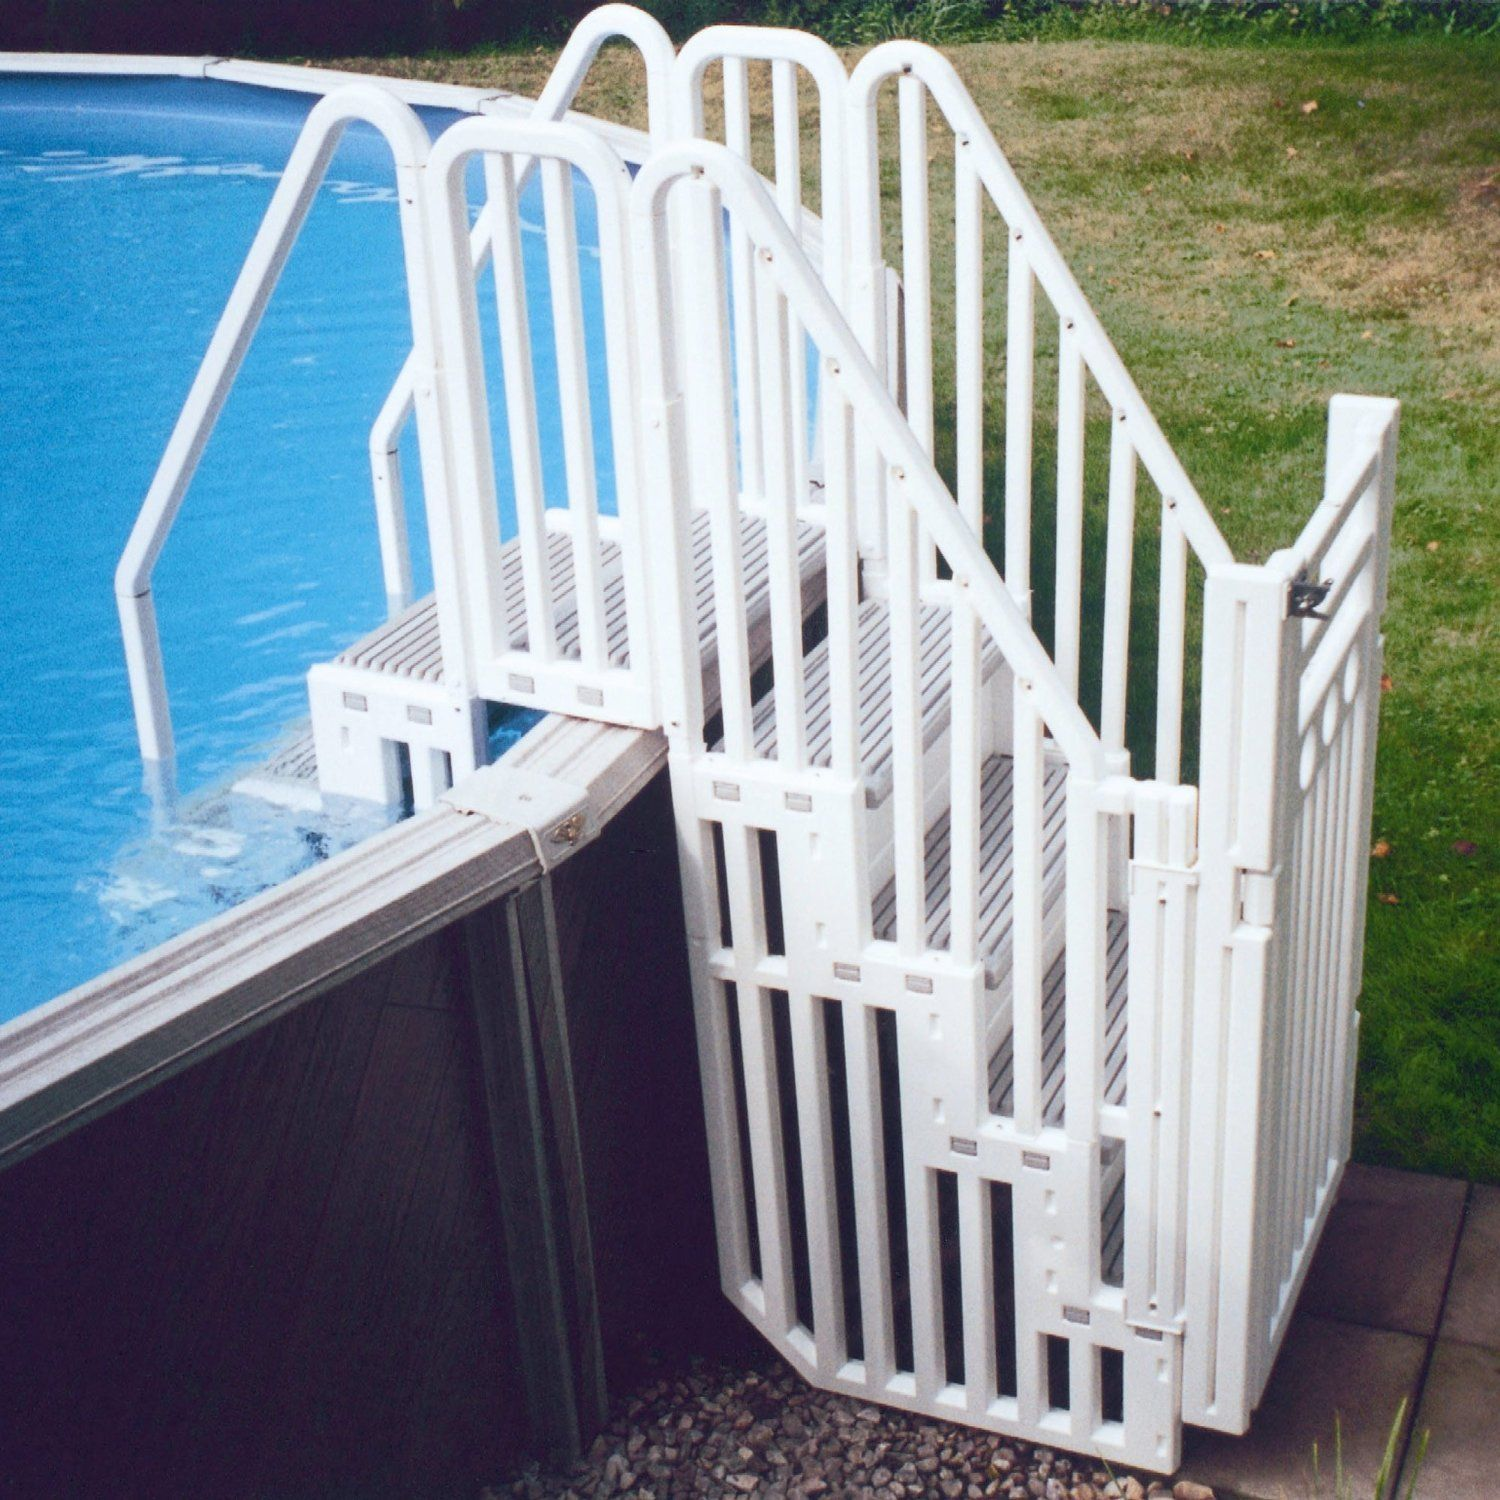 Best above ground pool ladders reviews the pool cleaner